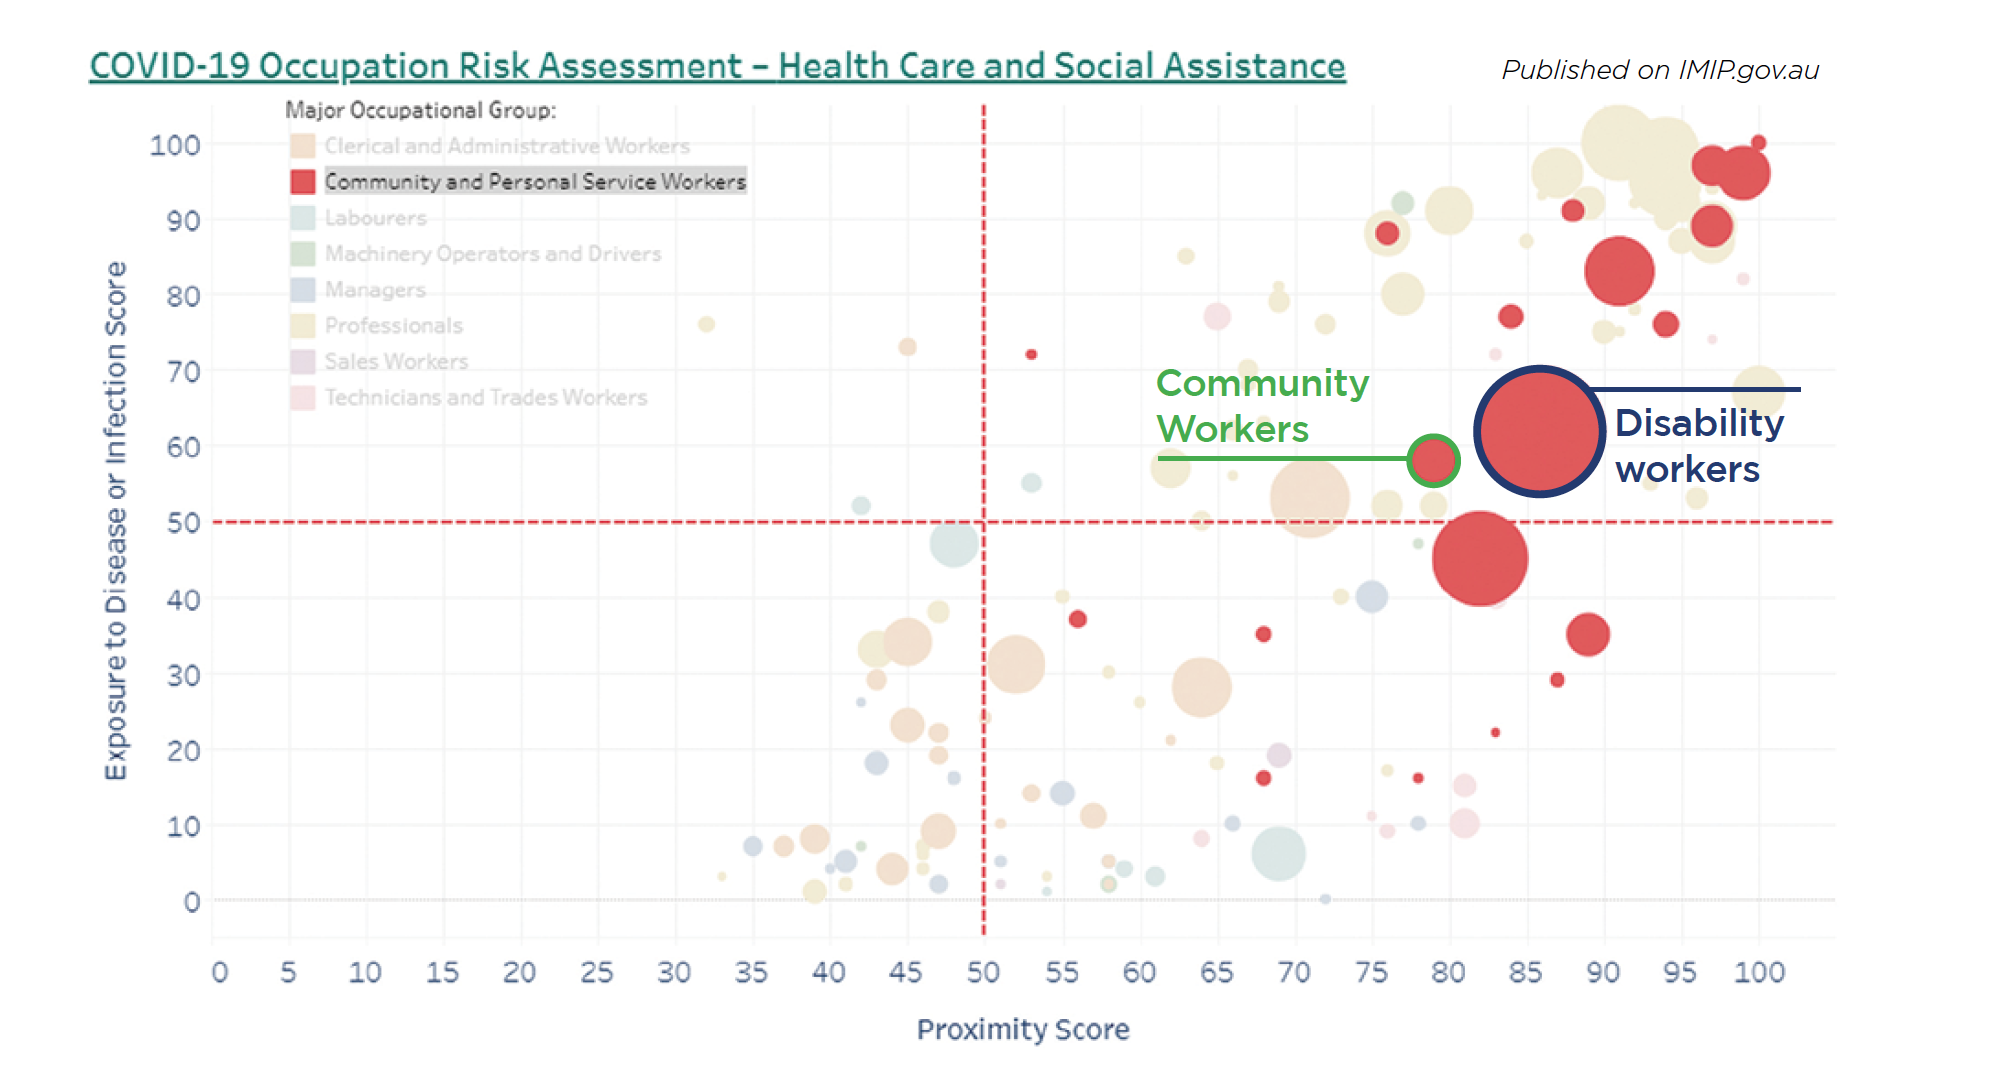 COVID 19 Occupation Risk Assessment data graph